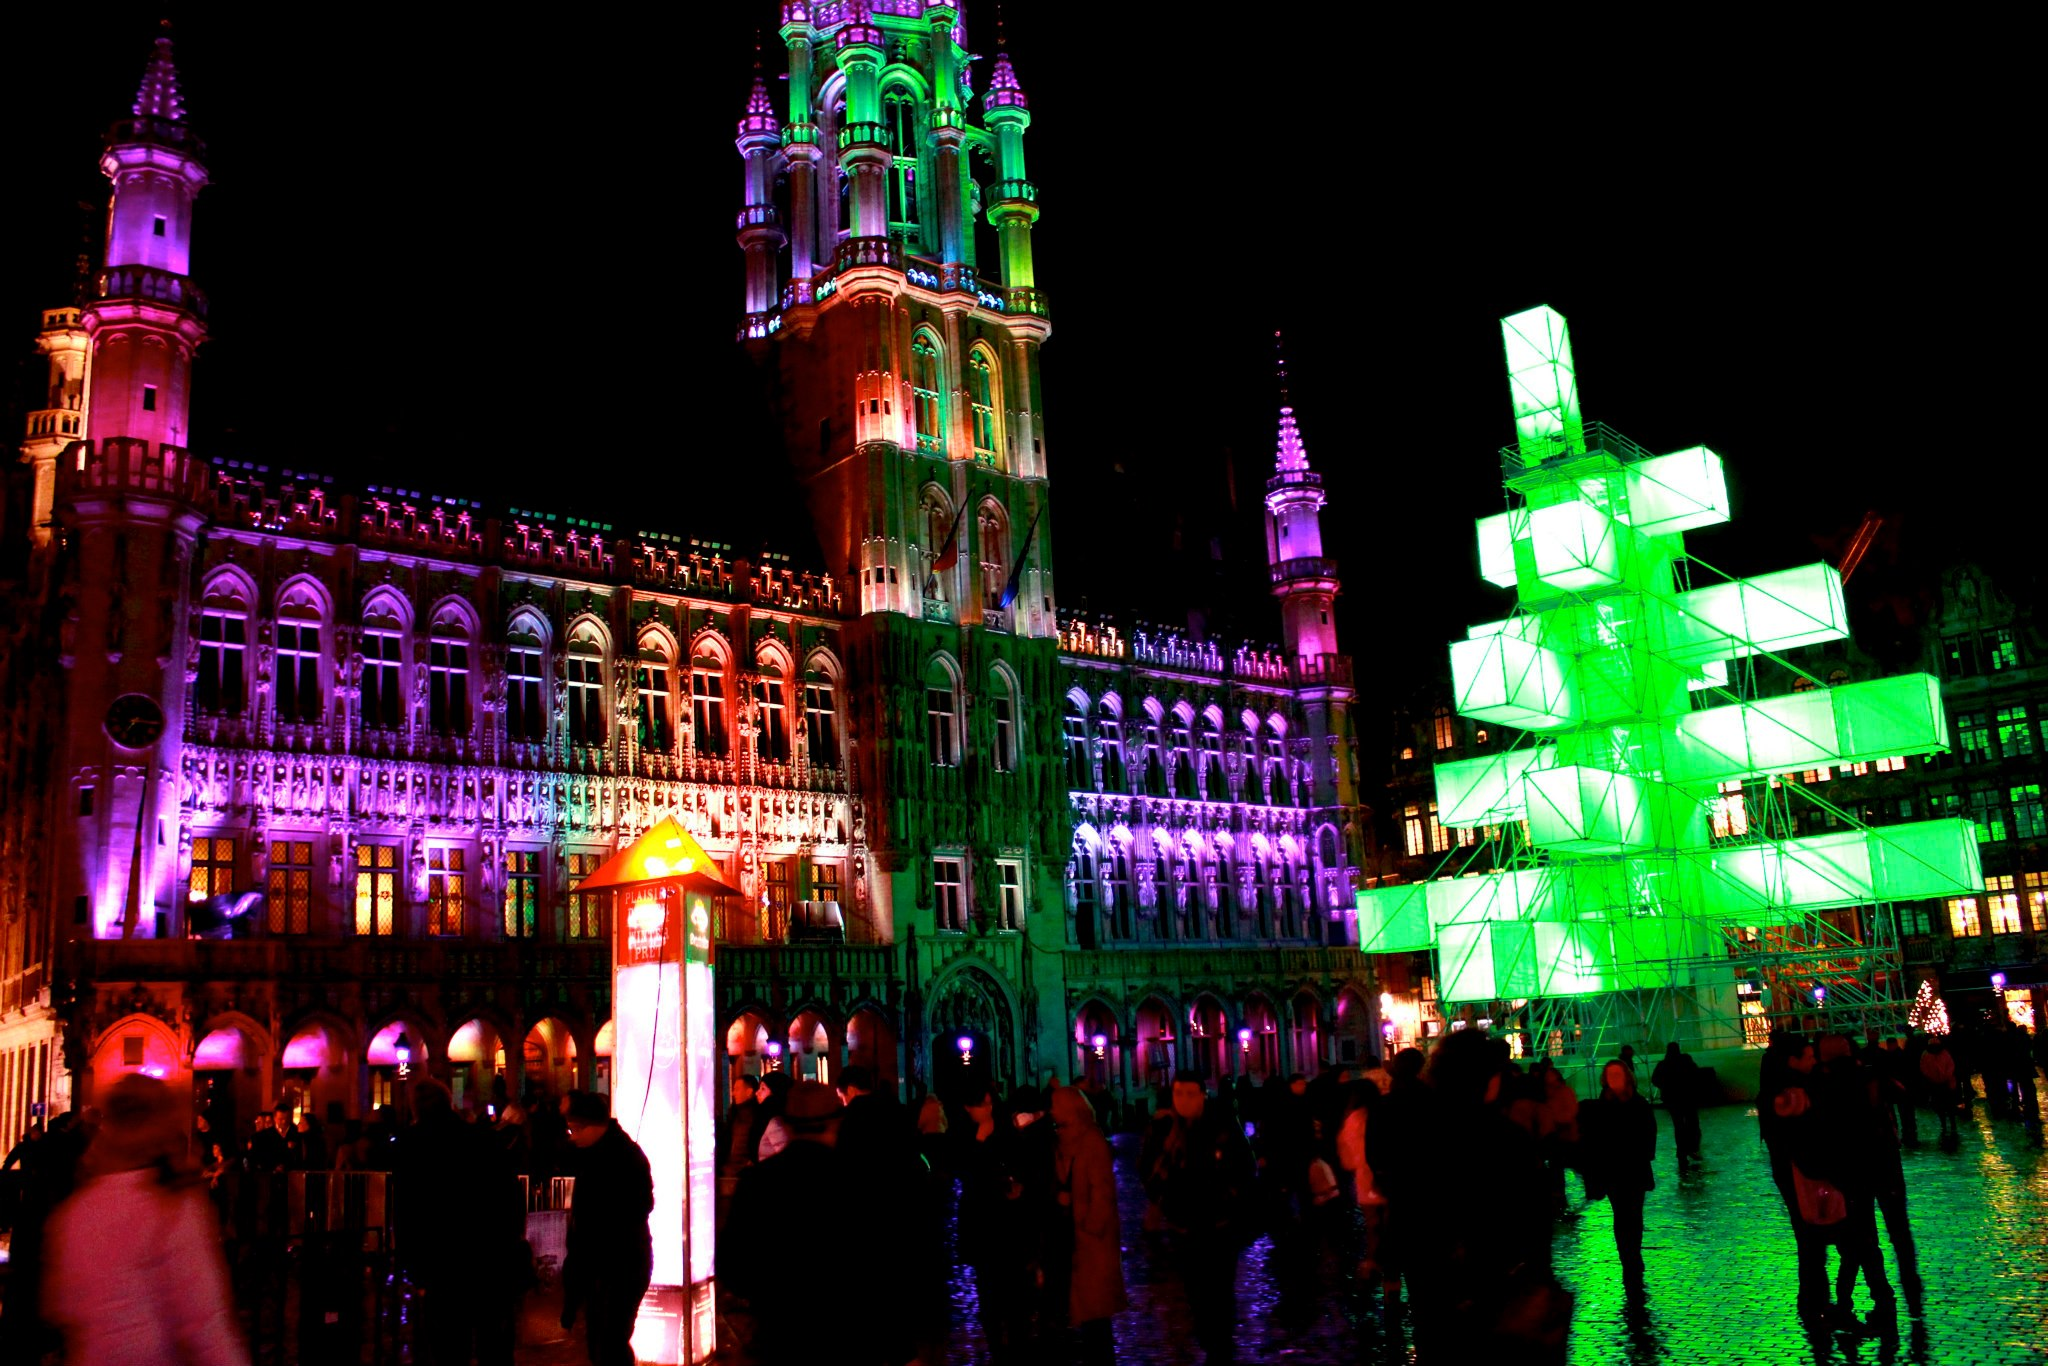 La Grand Place di Bruxelles immersa nei colori di un Natale hi tech